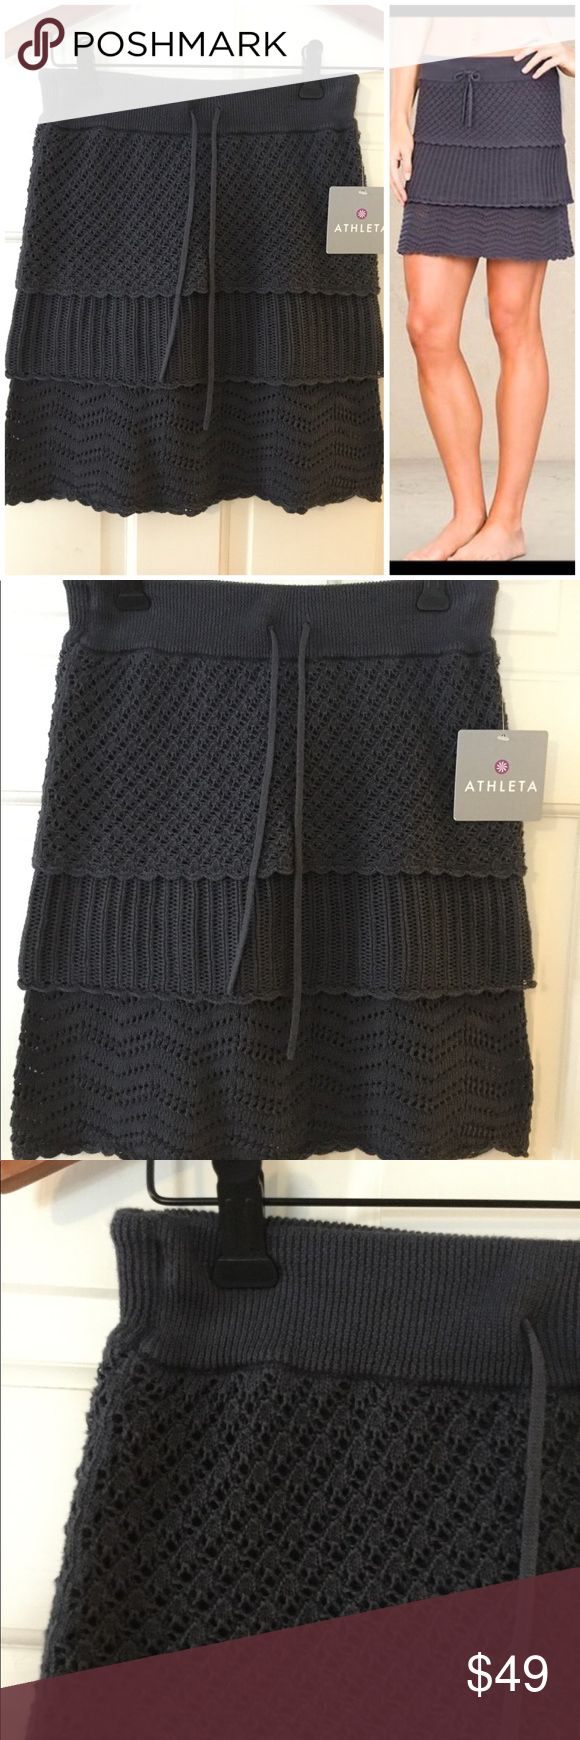 """🆕 Athleta crochet layer skirt Three crochet patterns layer for one cute skirt. 100% cotton. Hand wash.  Waist across 12.75"""". Length 18"""". Brand new with tag. Retail price $79. Smoke free and pet free. Athleta Skirts Mini"""